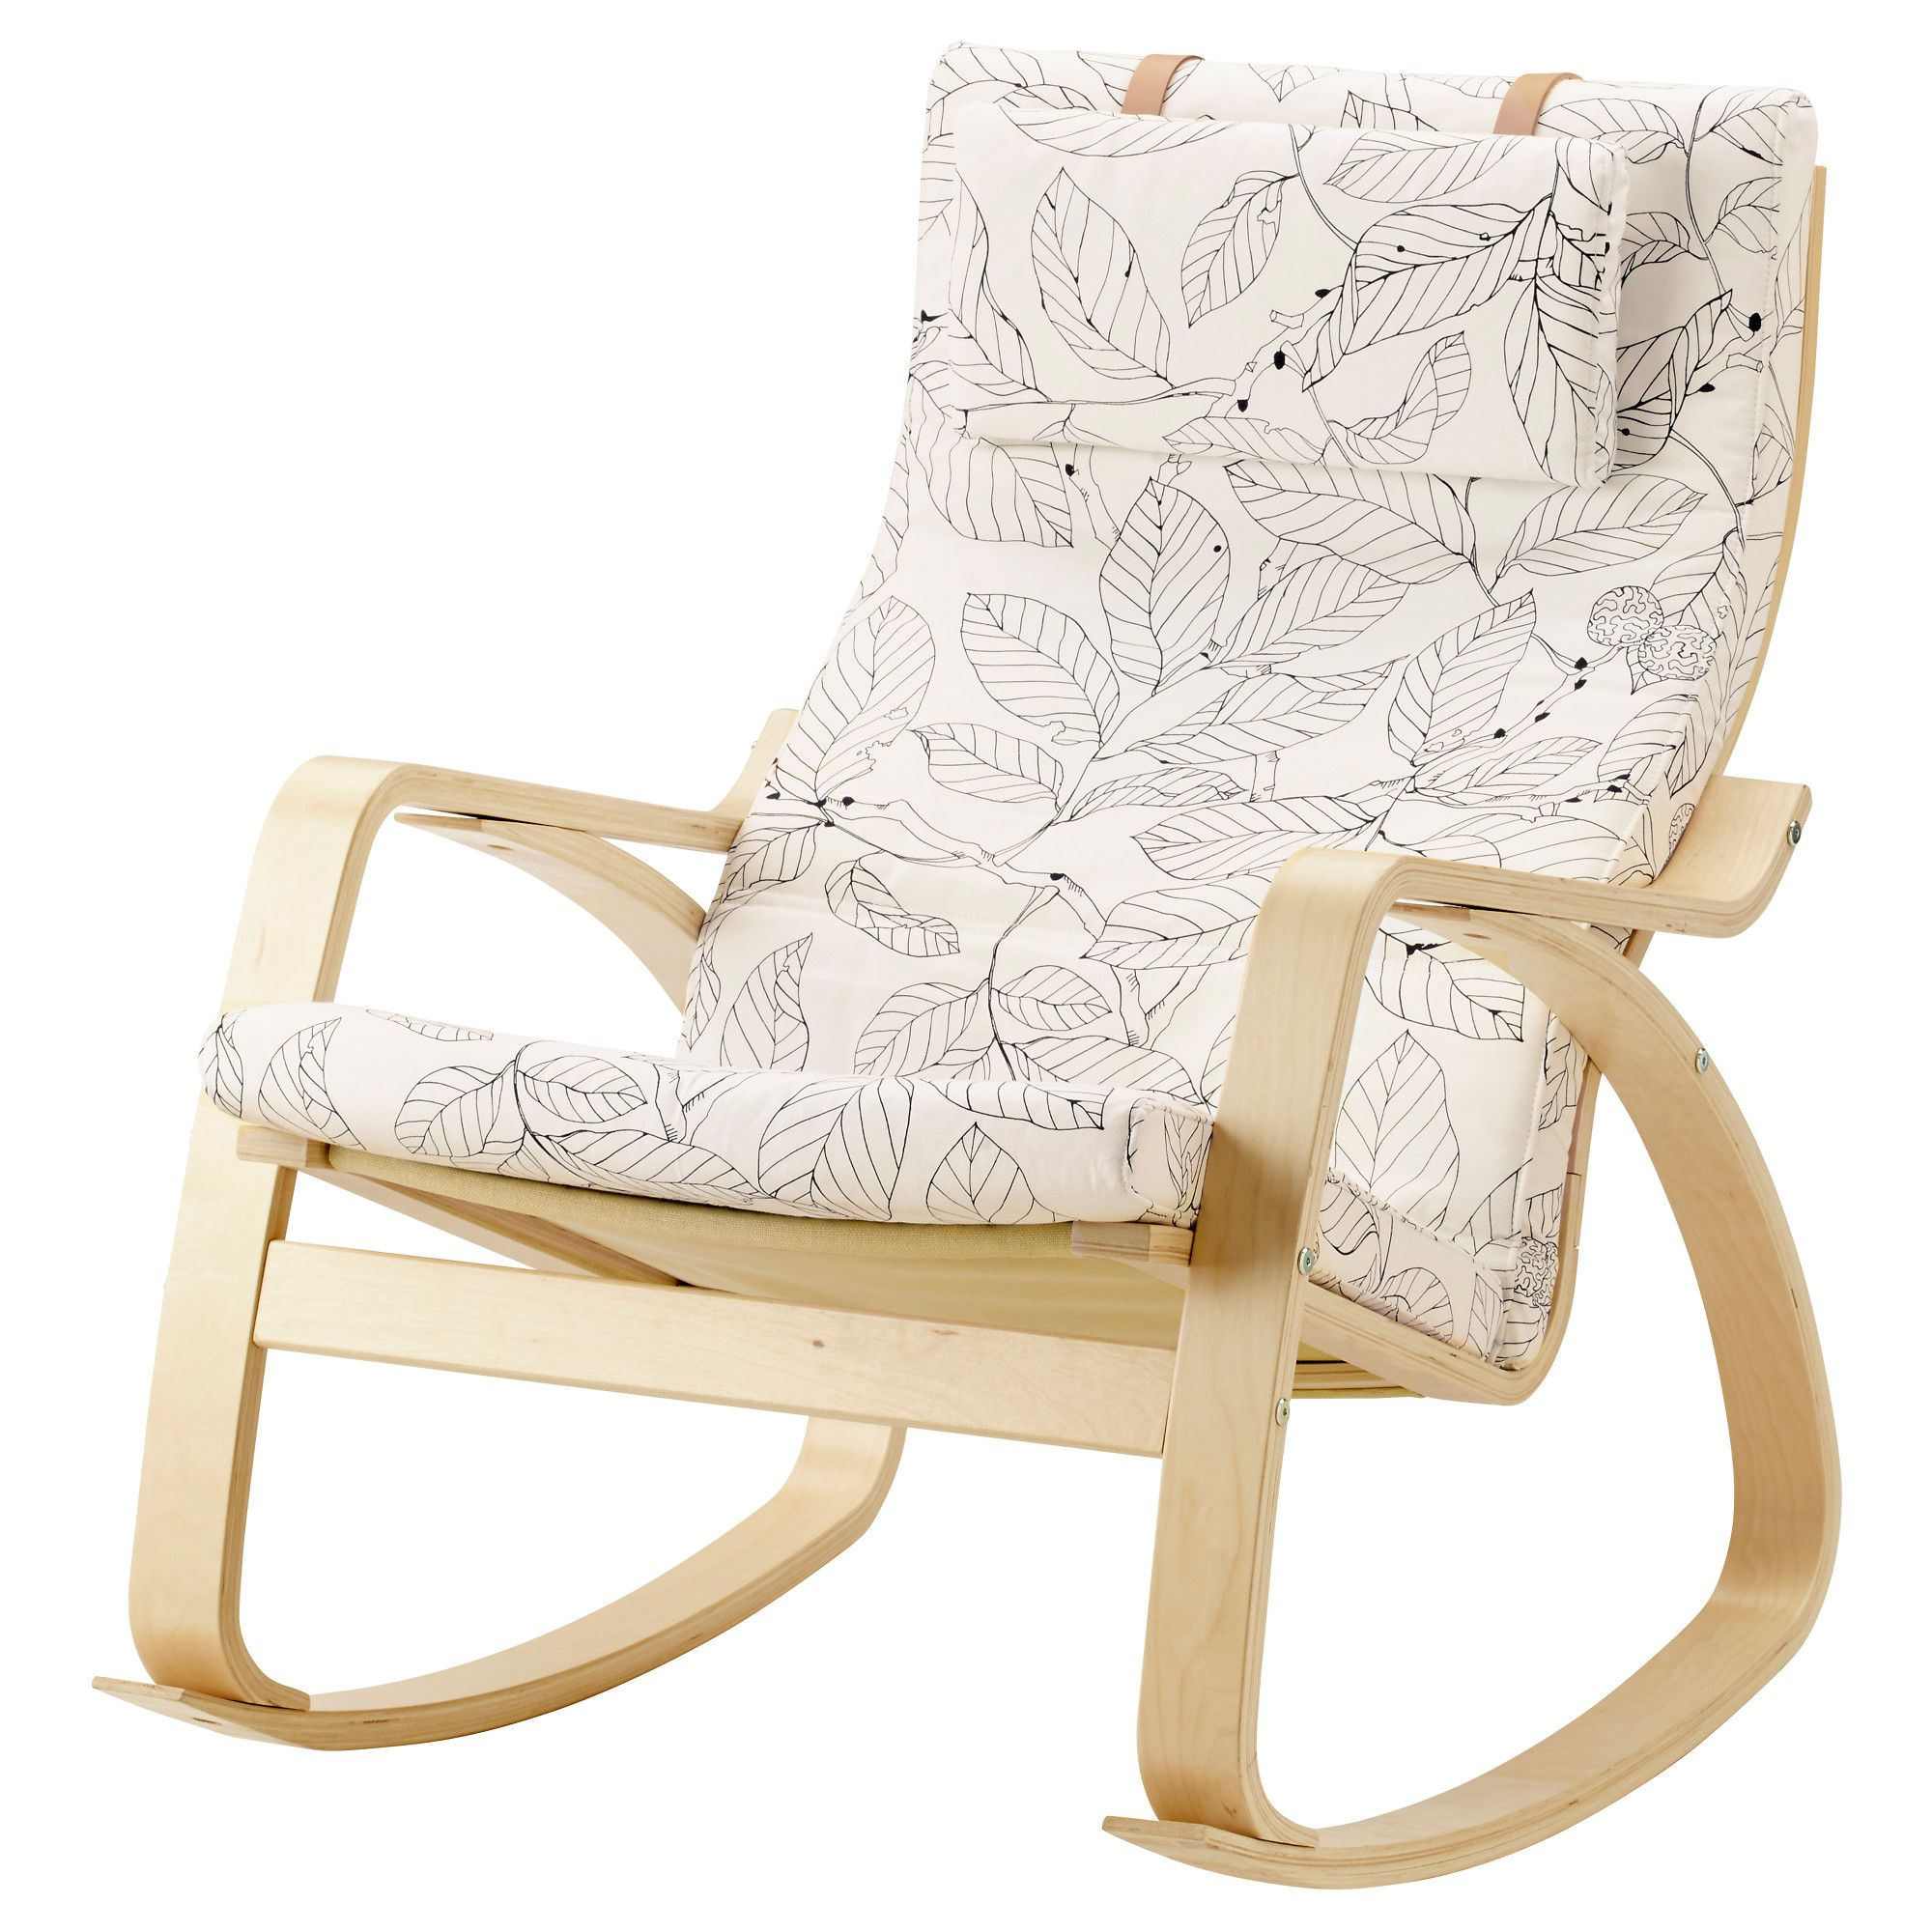 Furniture and Home Furnishings Rocking chair, Poang